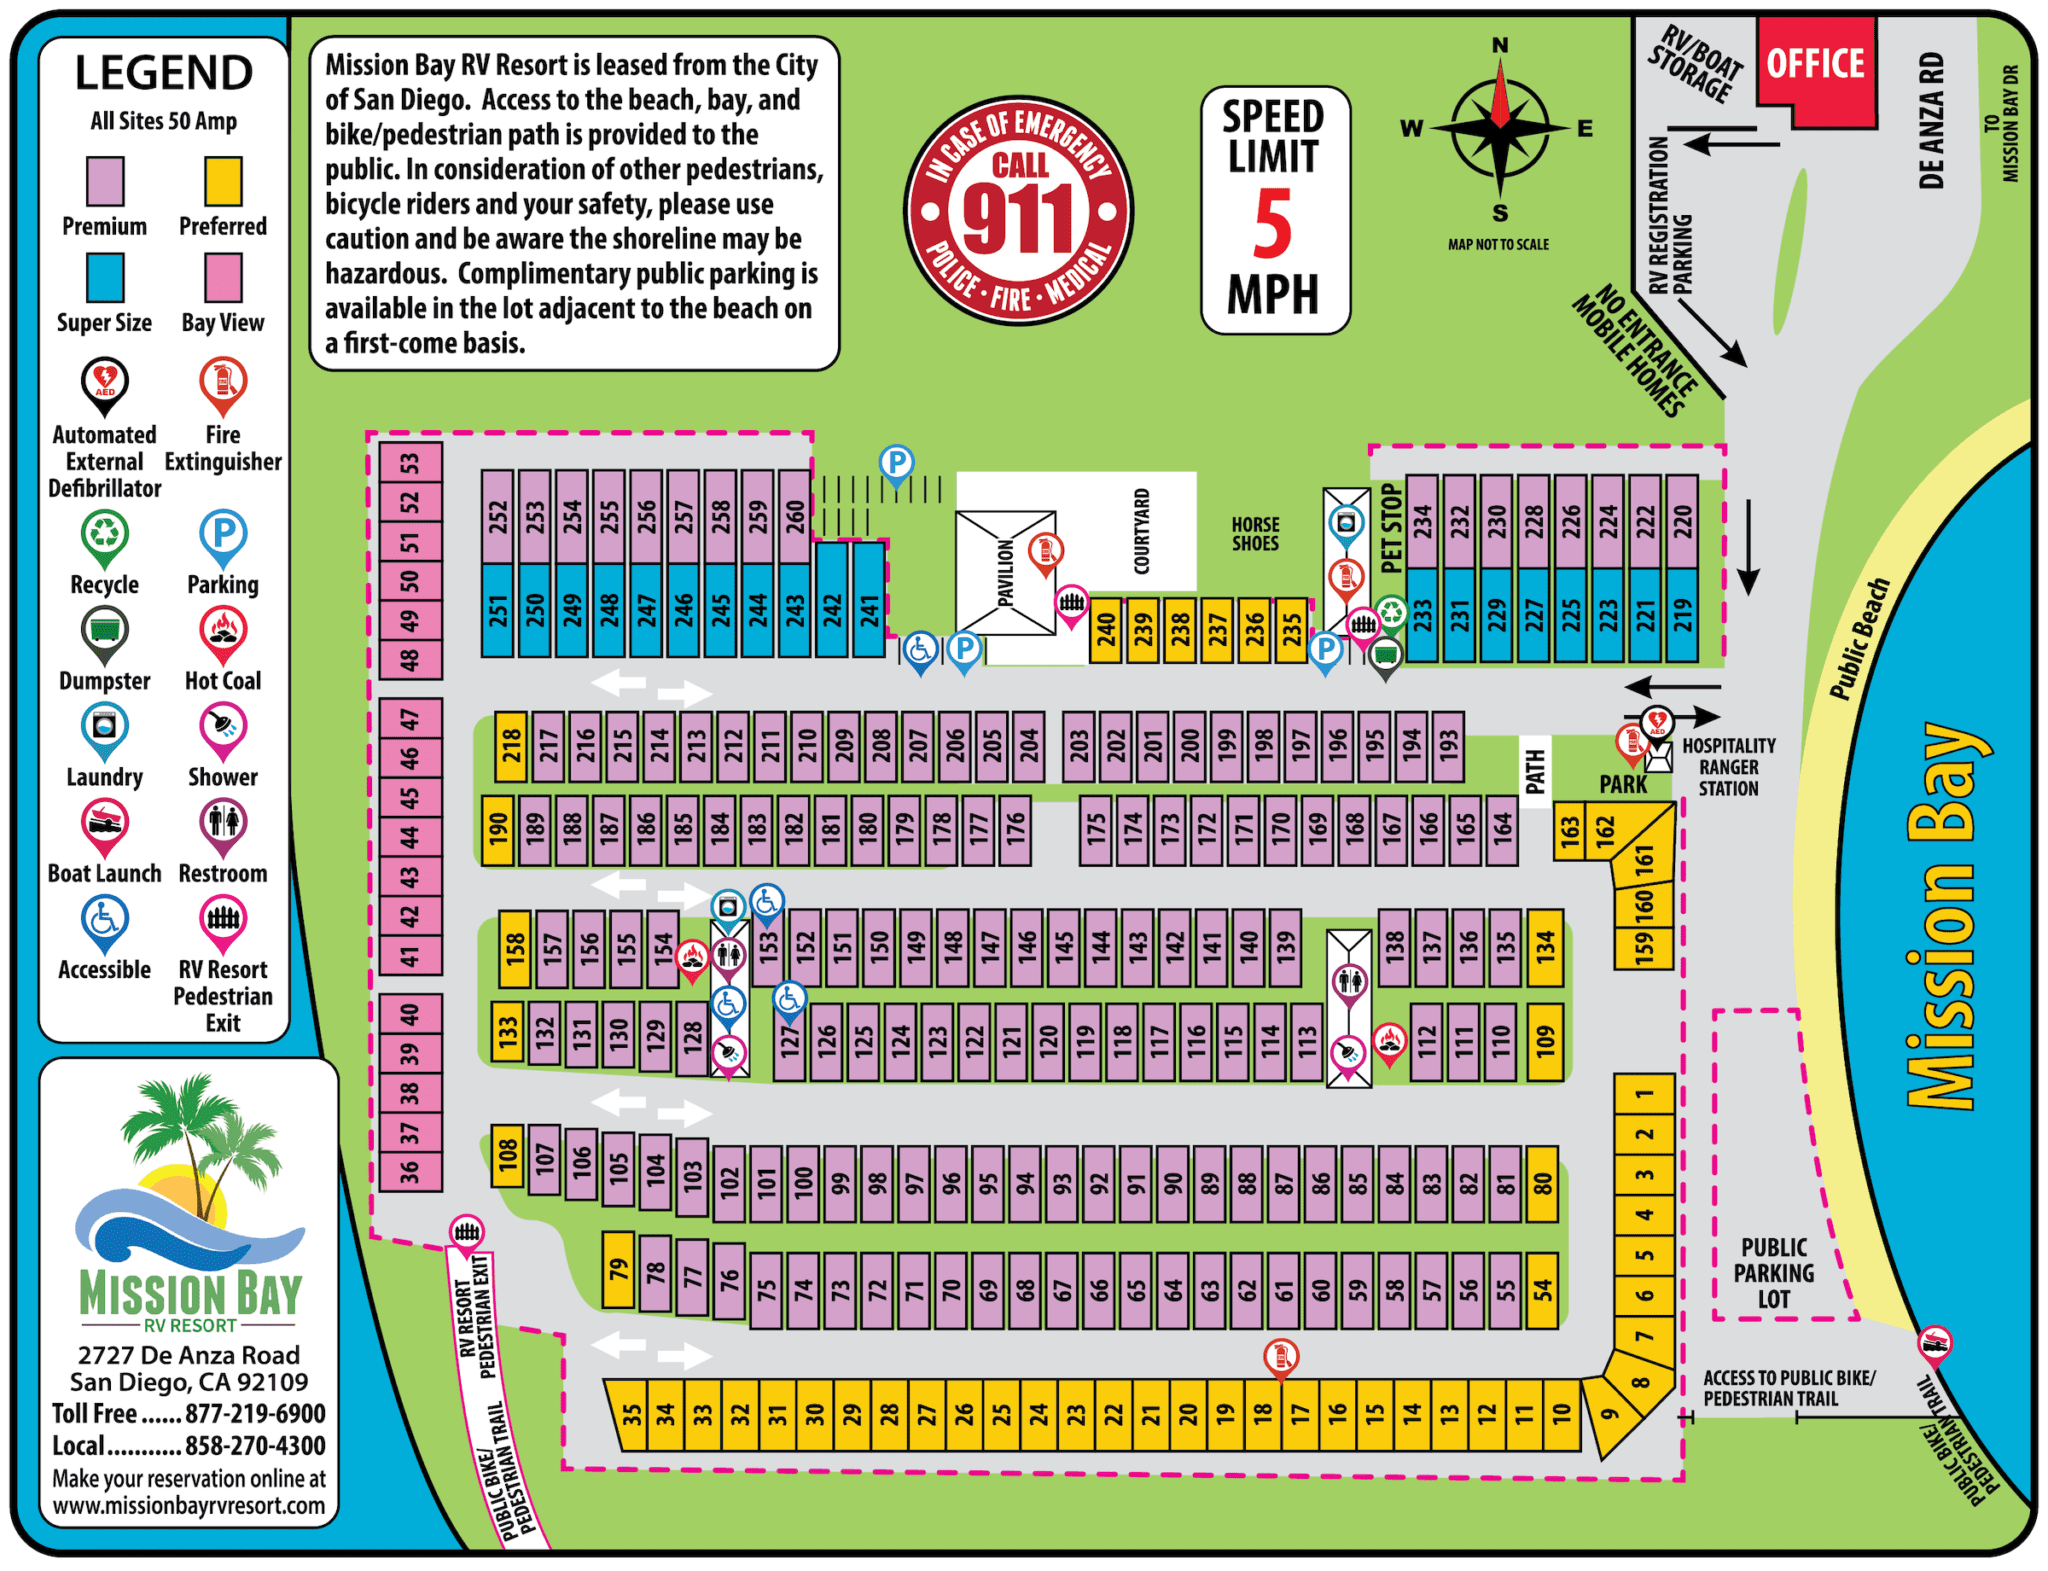 Image shows resort map with amenities, site numbers and location, and public access to the beach and parking.